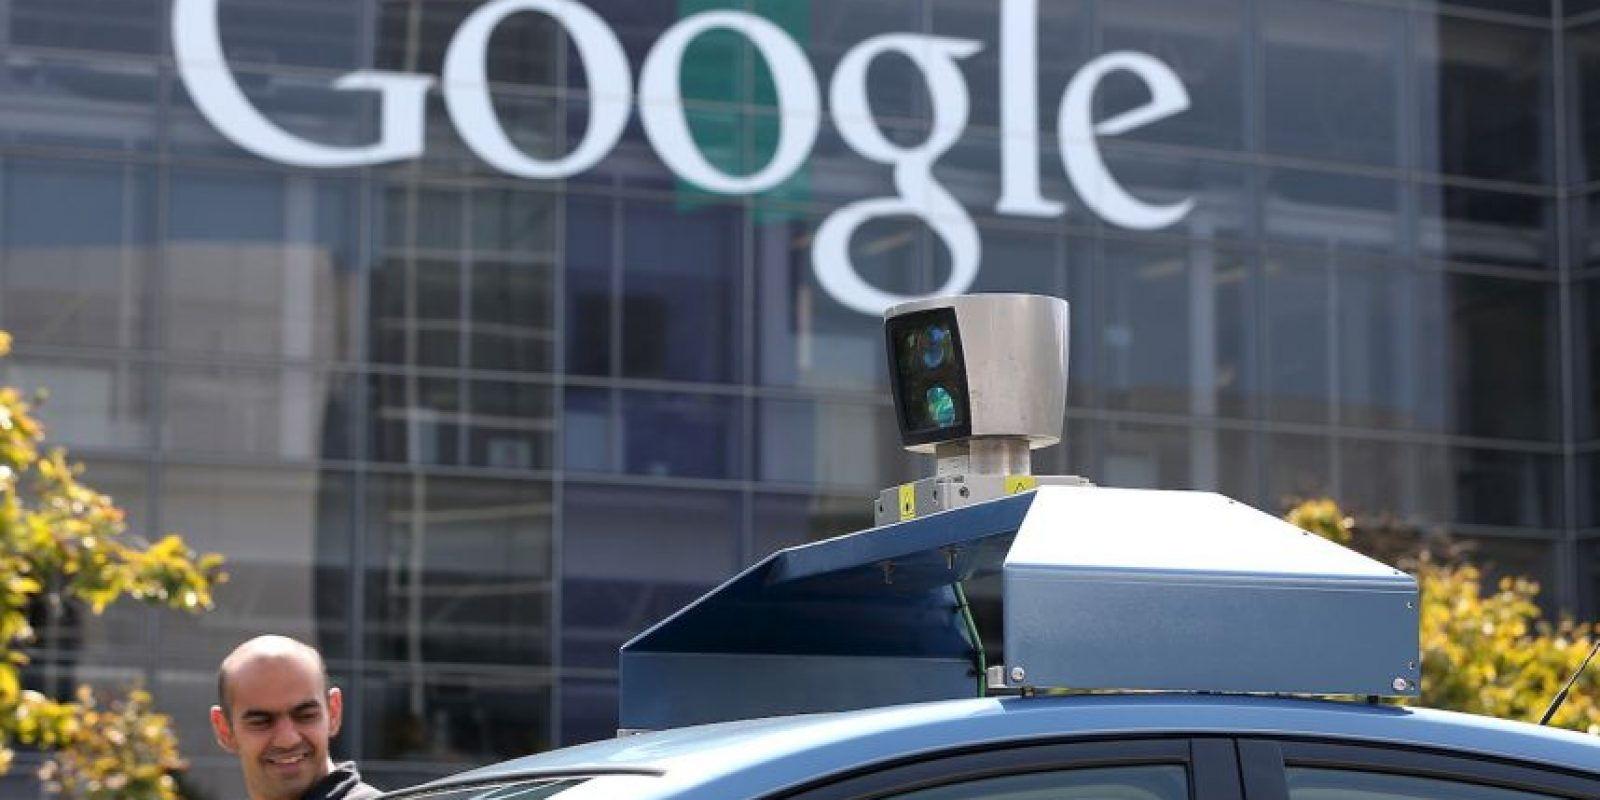 Google Street View es una prestación de Google Maps y de Google Earth Foto: Getty Images